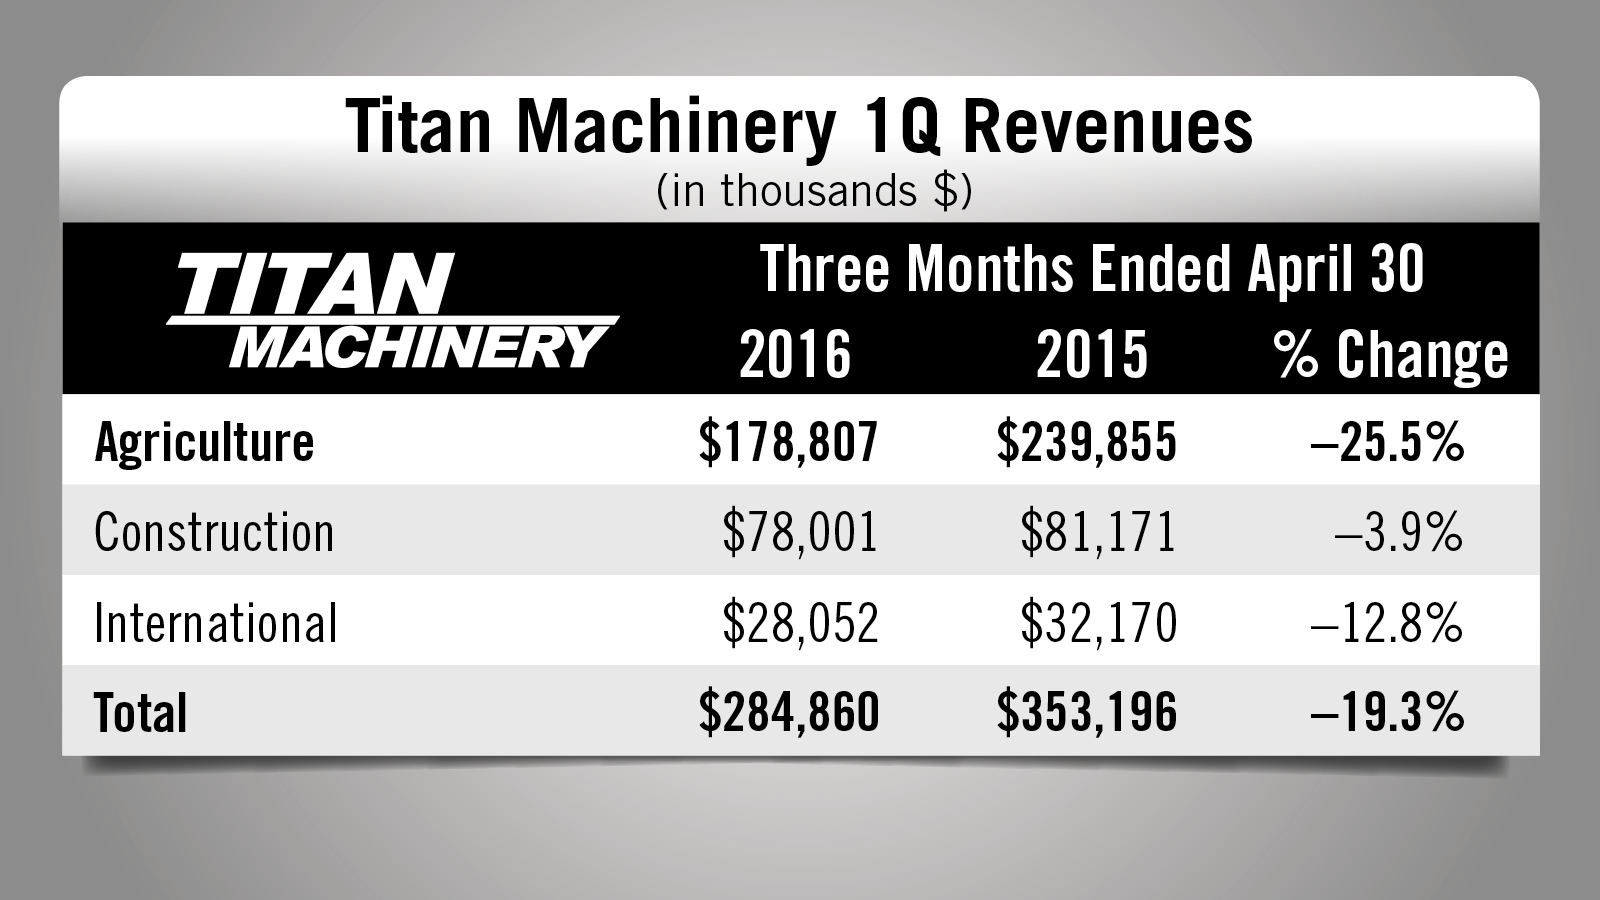 Titan financial results